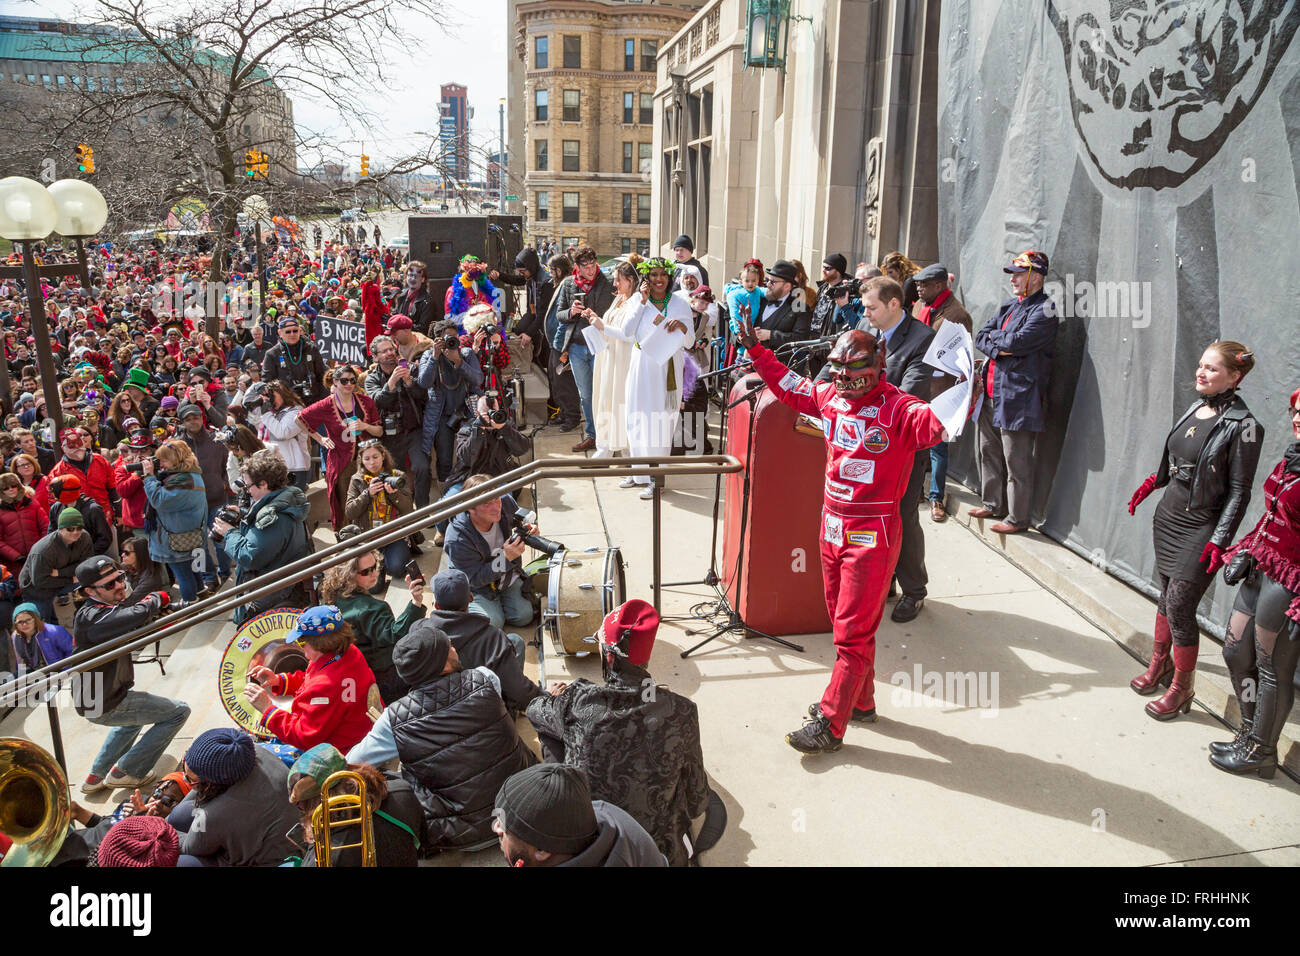 Detroit, Michigan -The Marche du Nain Rouge celebrates the coming of spring and banishes the Nain Rouge (Red Dwarf) - Stock Image